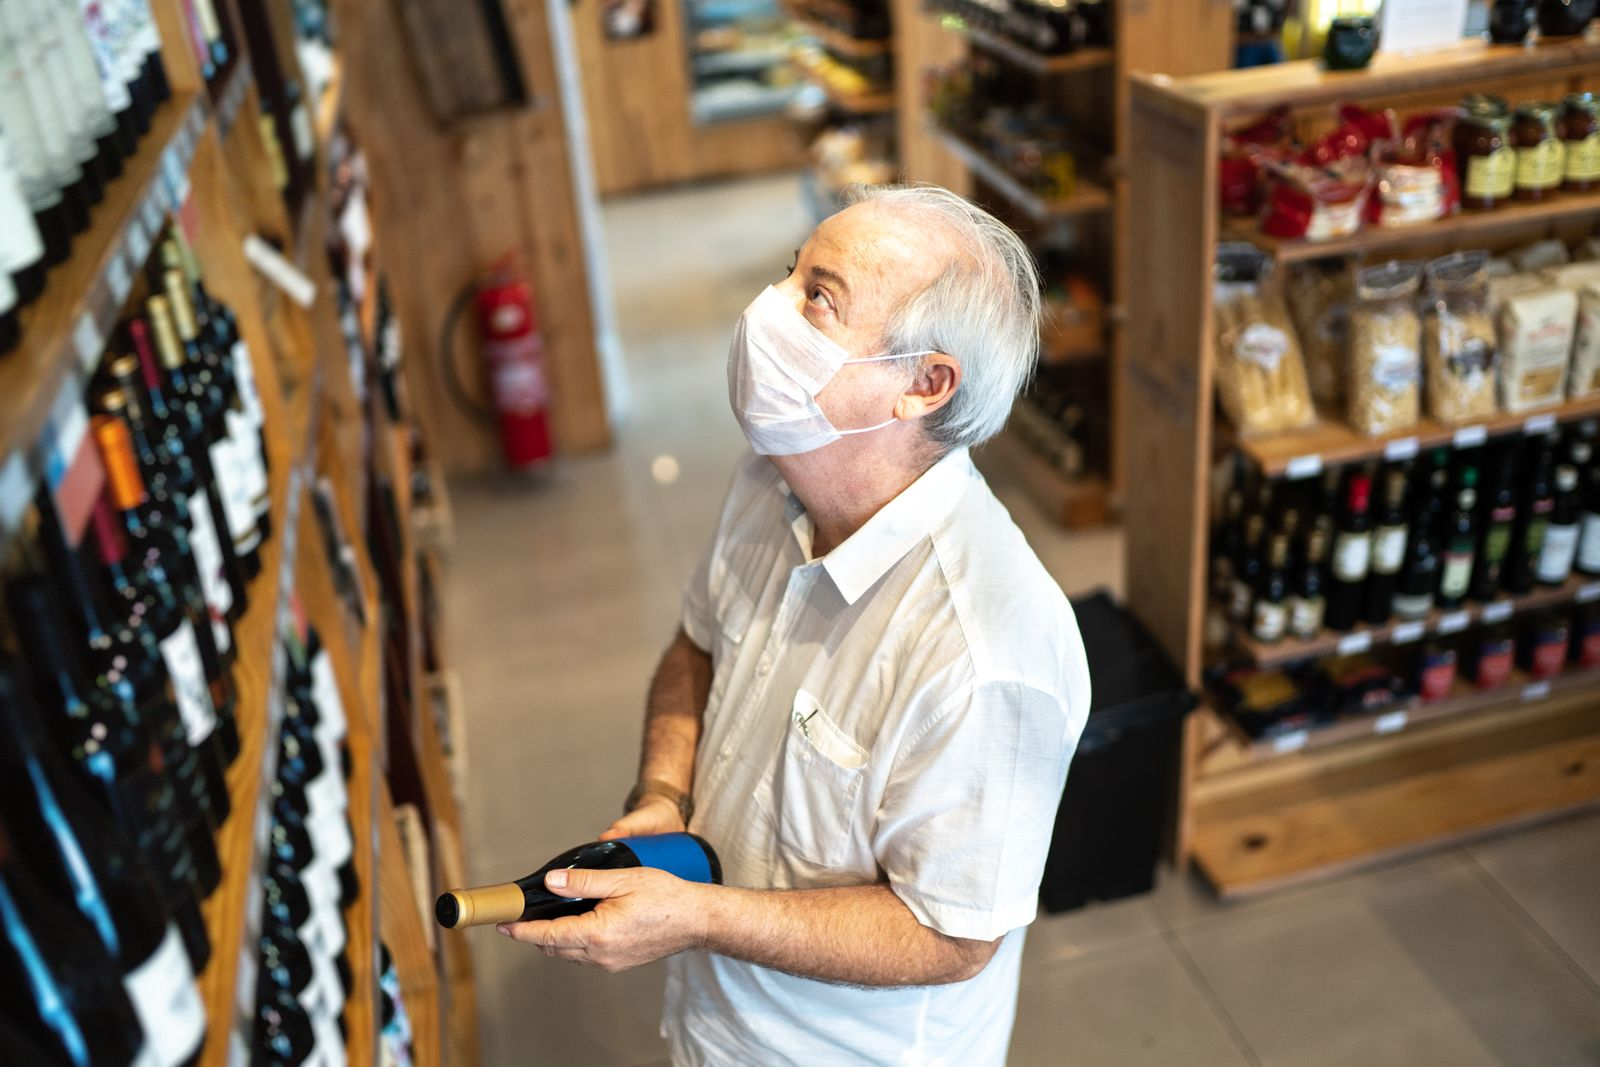 Senior man buying wine with face mask at store